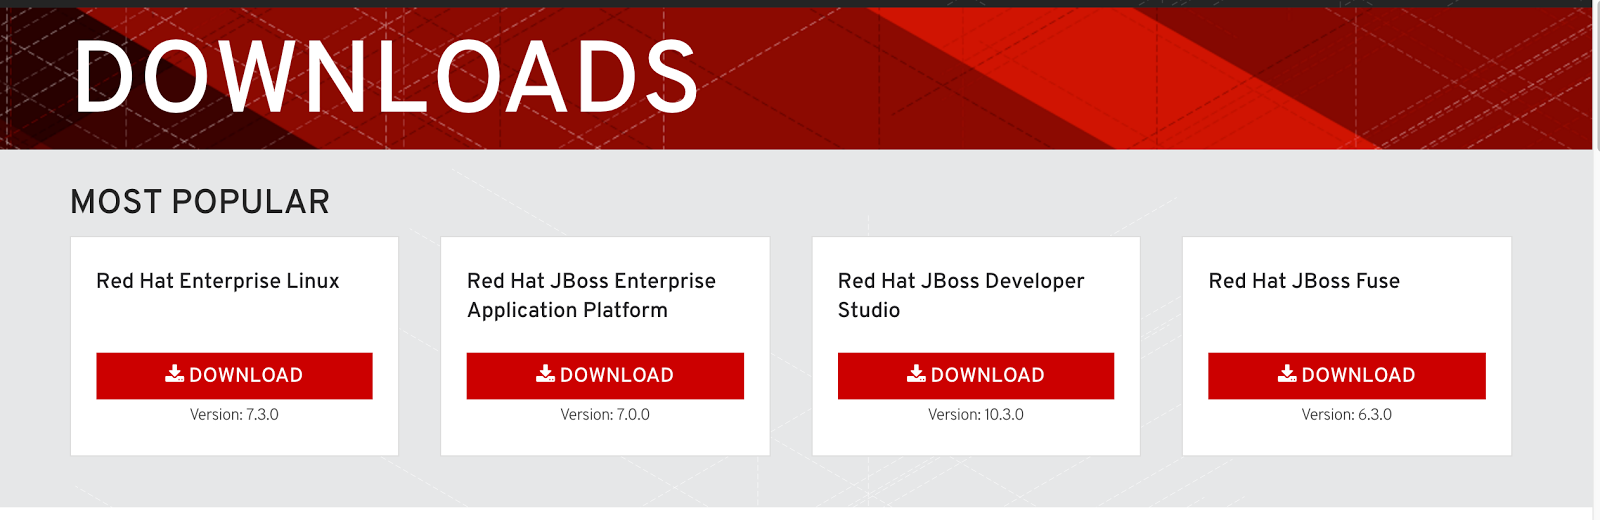 Red Hat JBoss Middleware: How to install Red Hat JBoss EAP 7